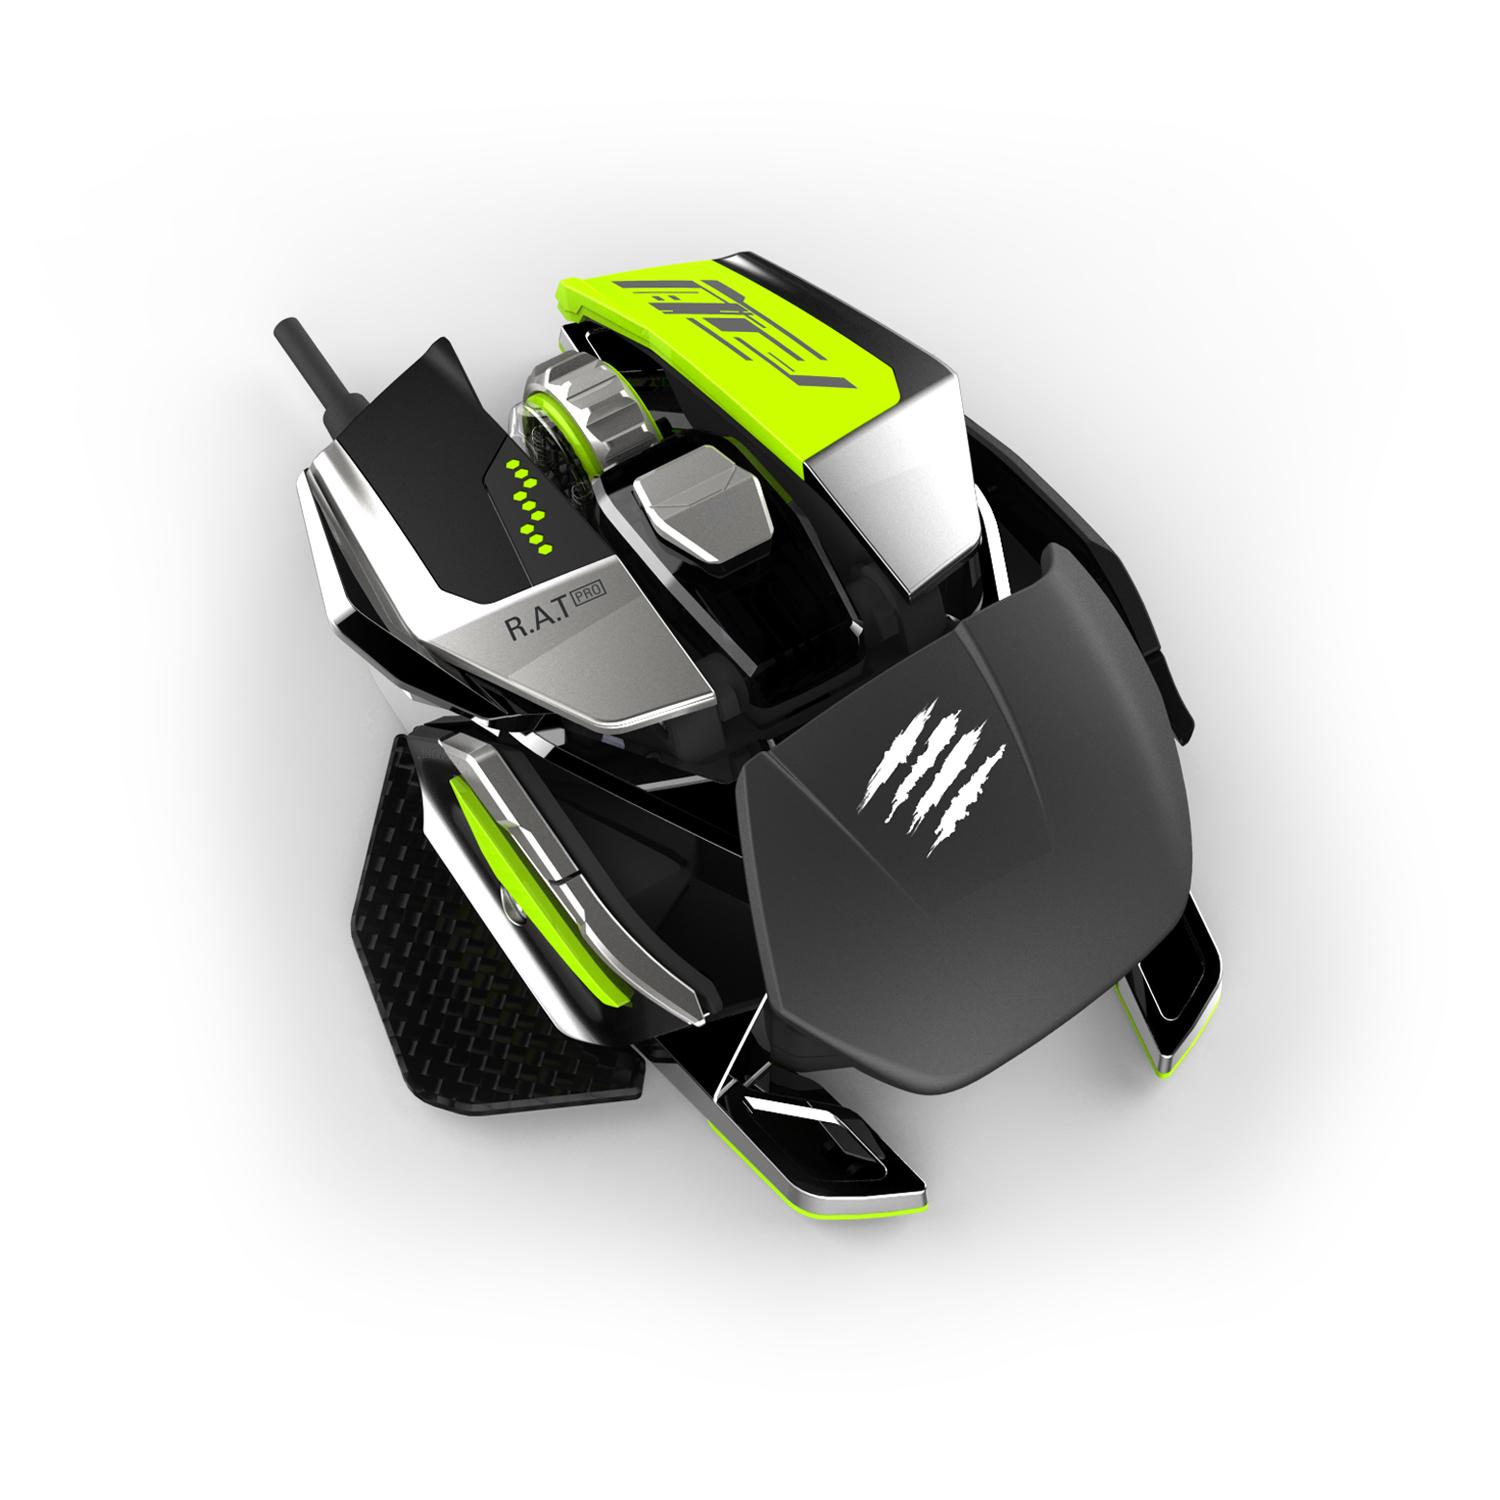 Rat Pro X Gaming Mouse